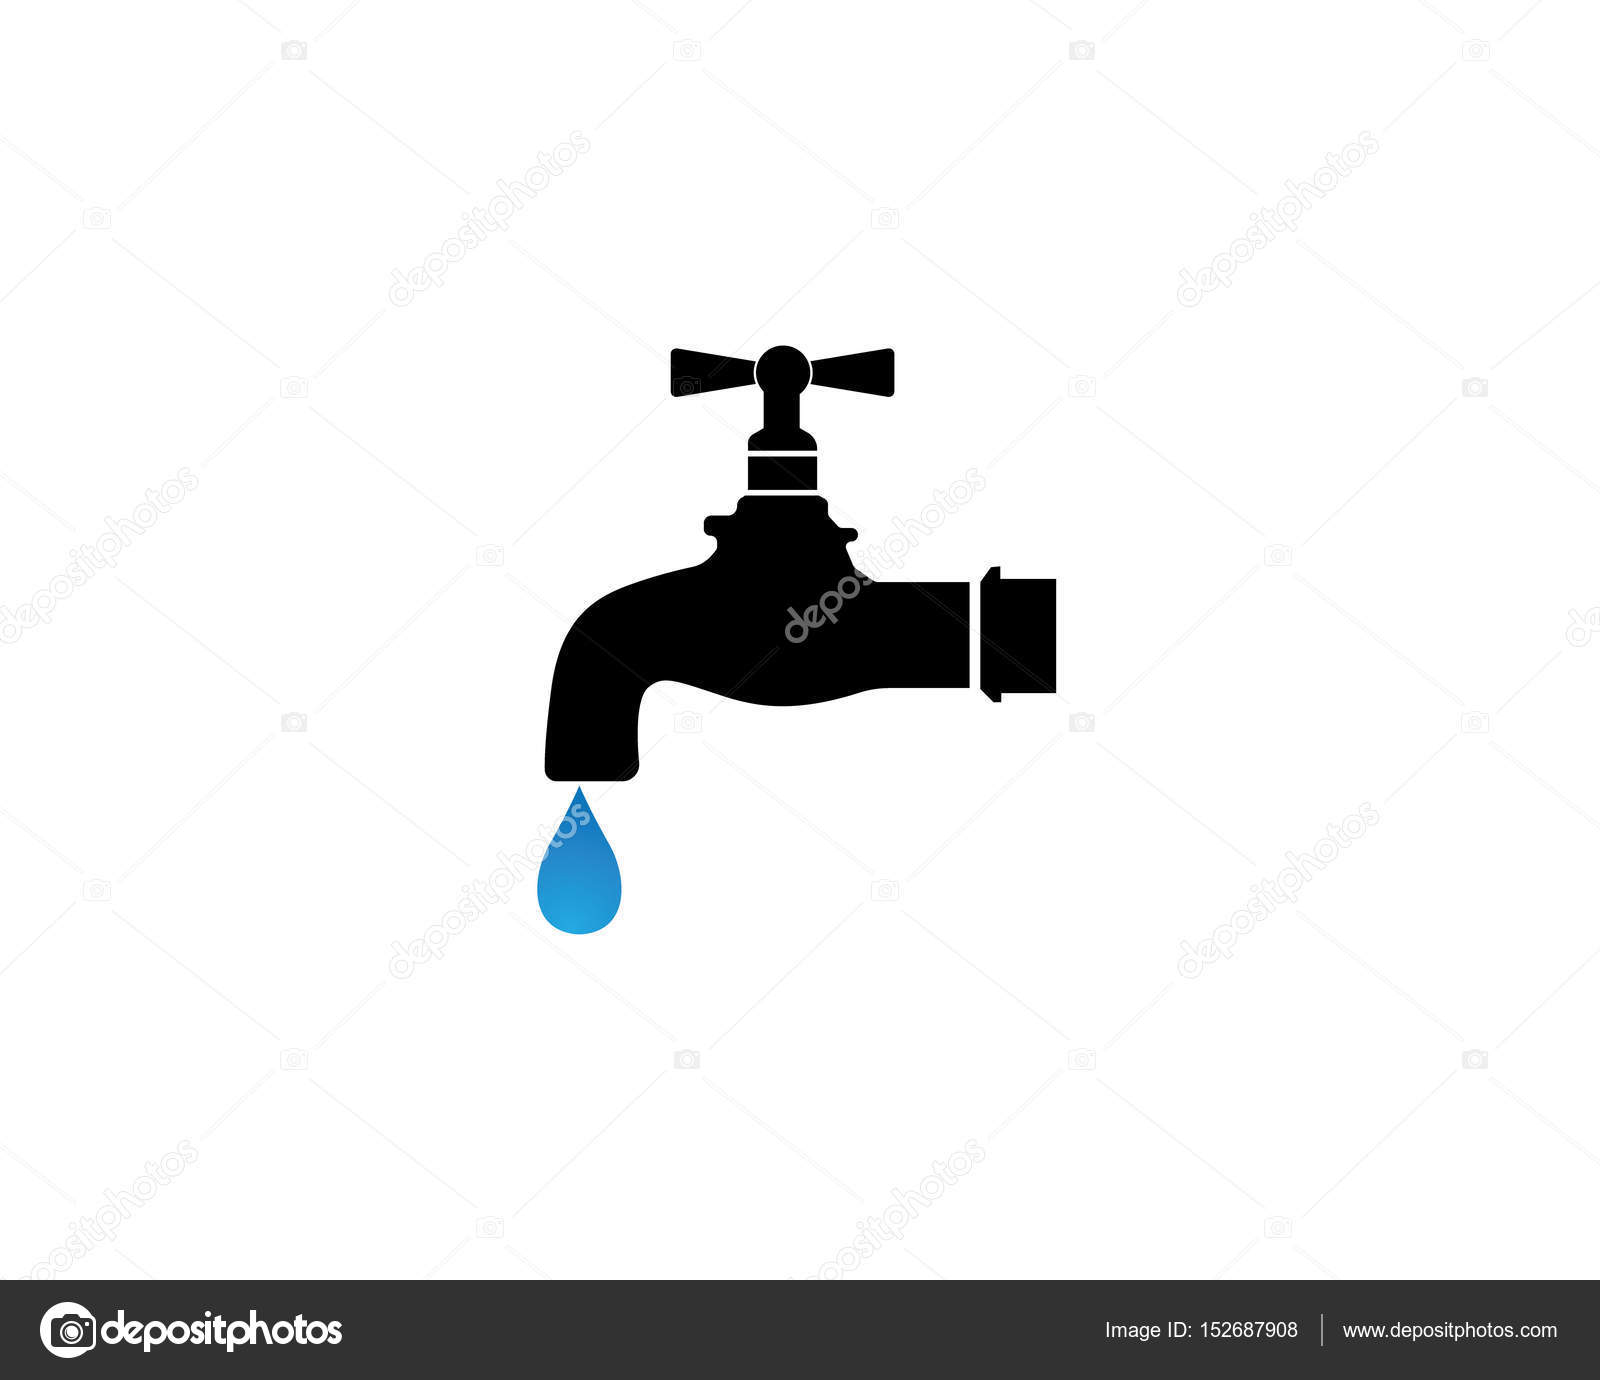 water faucet logo and symbols — Stock Vector © elaelo #152687908